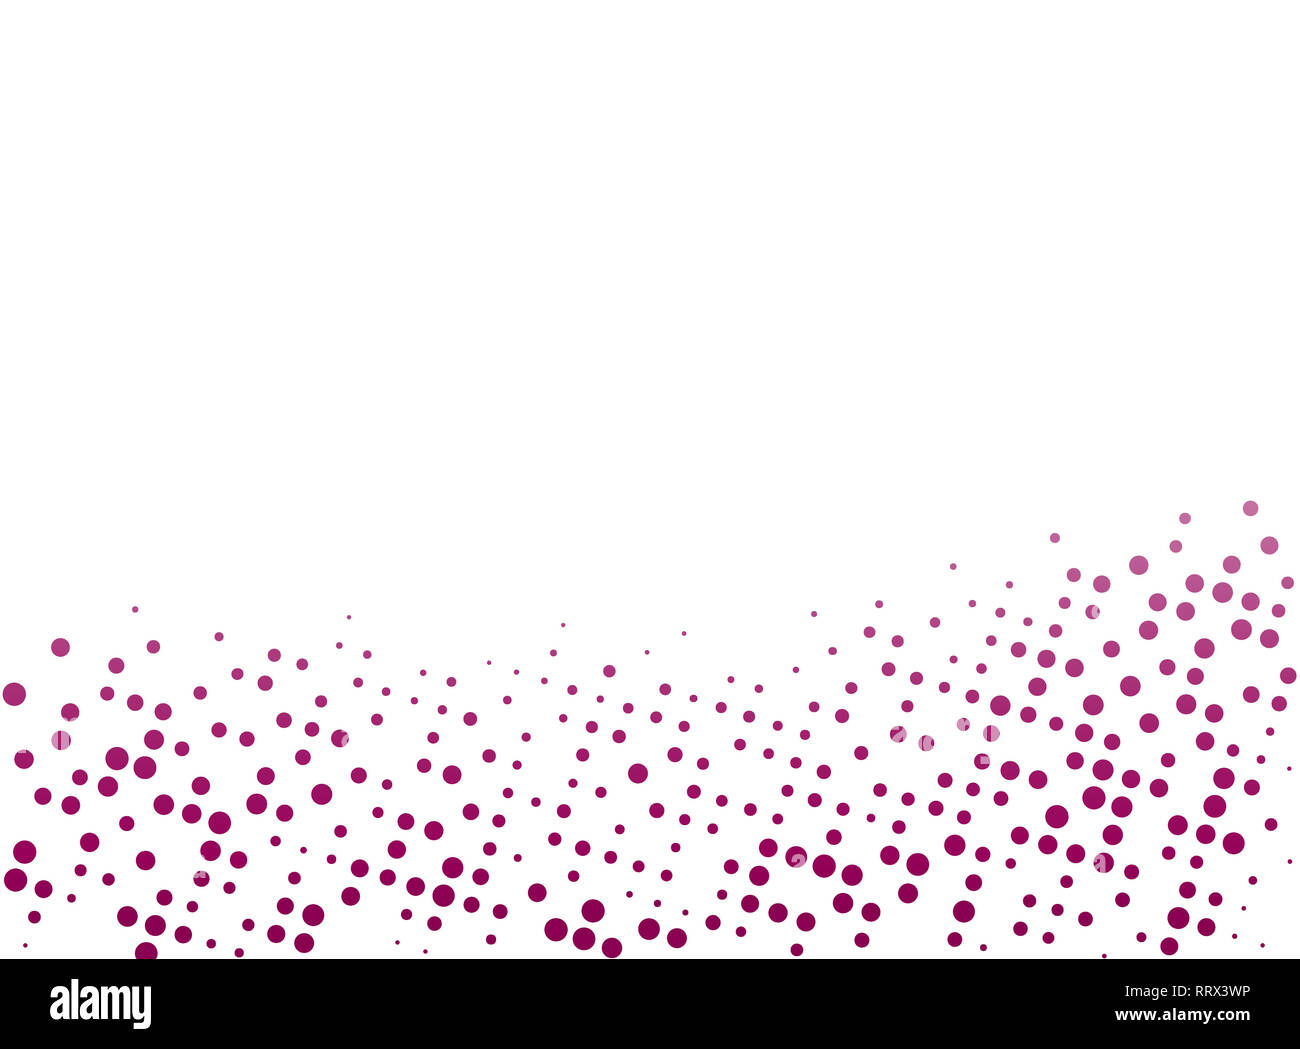 Burgundy red abstract dotted background with copy space and clipping path. Creative halftone pattern, design template and illustration on white. - Stock Image